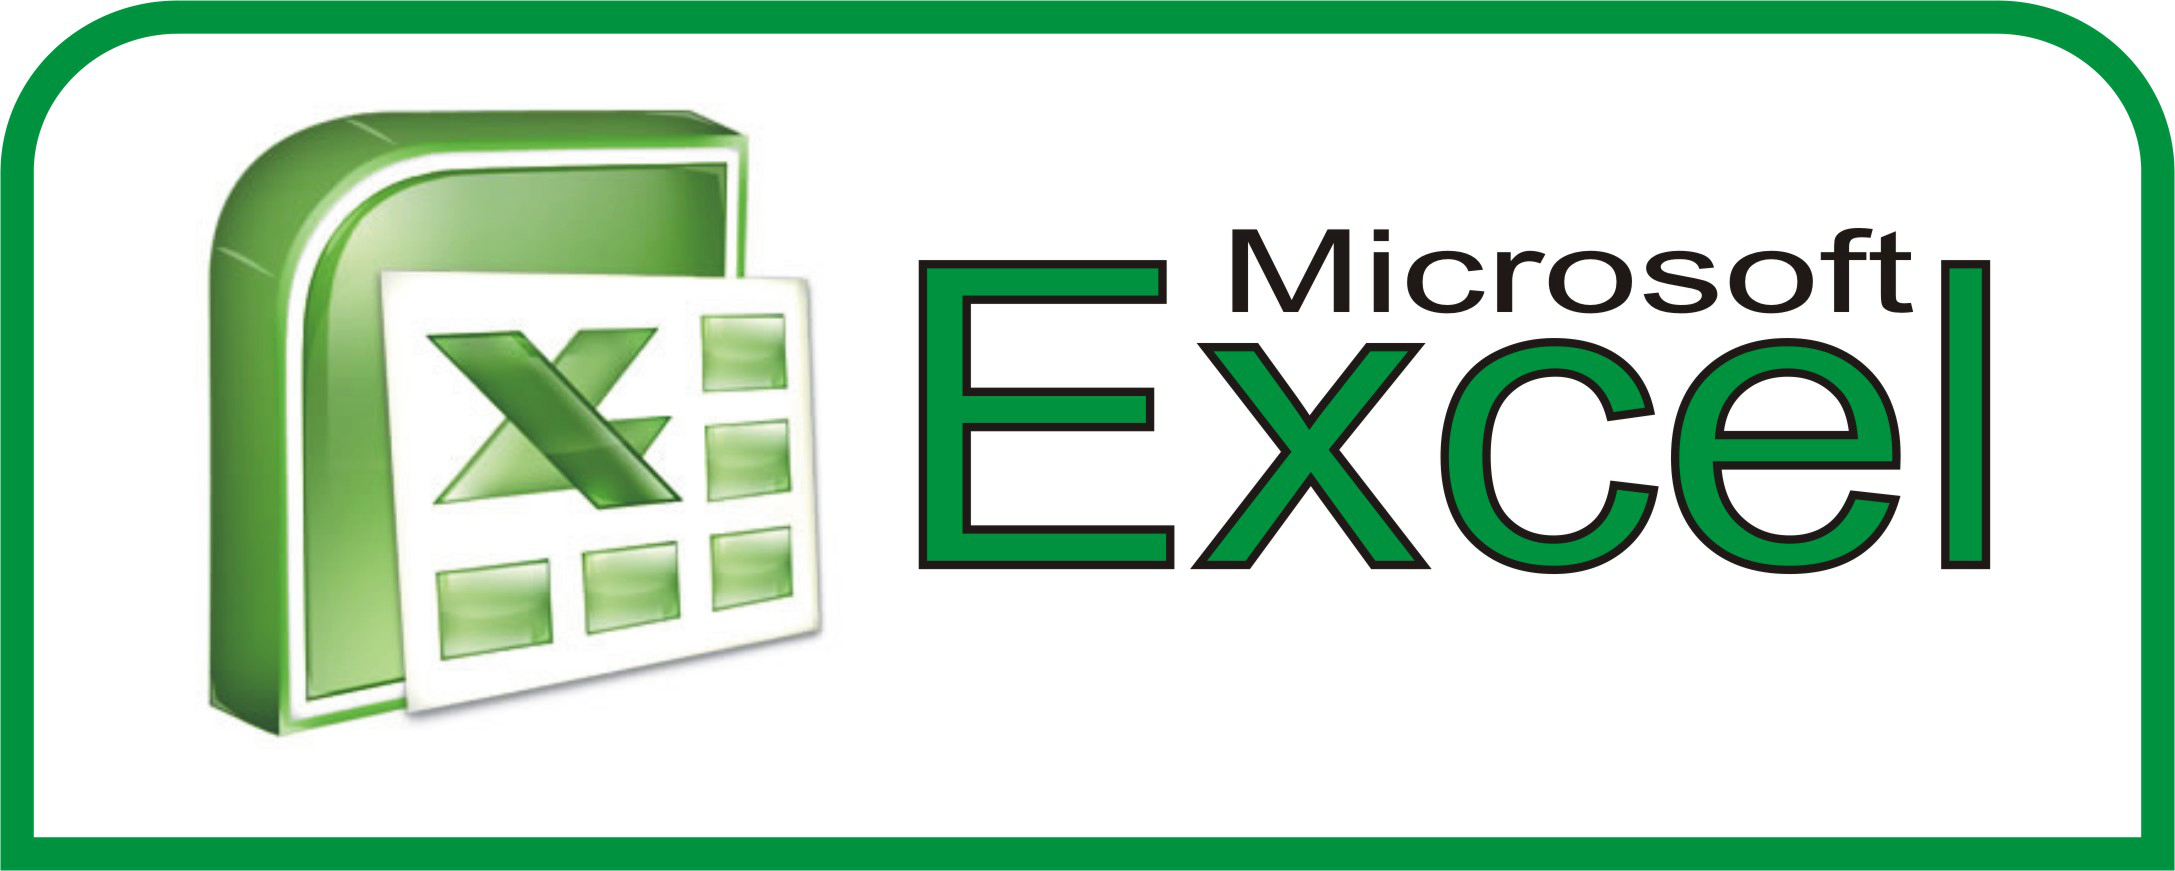 Ediblewildsus  Inspiring  Excel Shortcuts You Probably Didnt Know About  Techdissected With Handsome Using Functions In Excel Besides Printing Labels From Excel  Furthermore Excel  Icon With Delectable Find The Mean In Excel Also How To Make Spreadsheet In Excel In Addition Crash Course In Excel And Excel Task Tracker Template As Well As Excel Drop Down List Edit Additionally Date To Number Excel From Techdissectedcom With Ediblewildsus  Handsome  Excel Shortcuts You Probably Didnt Know About  Techdissected With Delectable Using Functions In Excel Besides Printing Labels From Excel  Furthermore Excel  Icon And Inspiring Find The Mean In Excel Also How To Make Spreadsheet In Excel In Addition Crash Course In Excel From Techdissectedcom